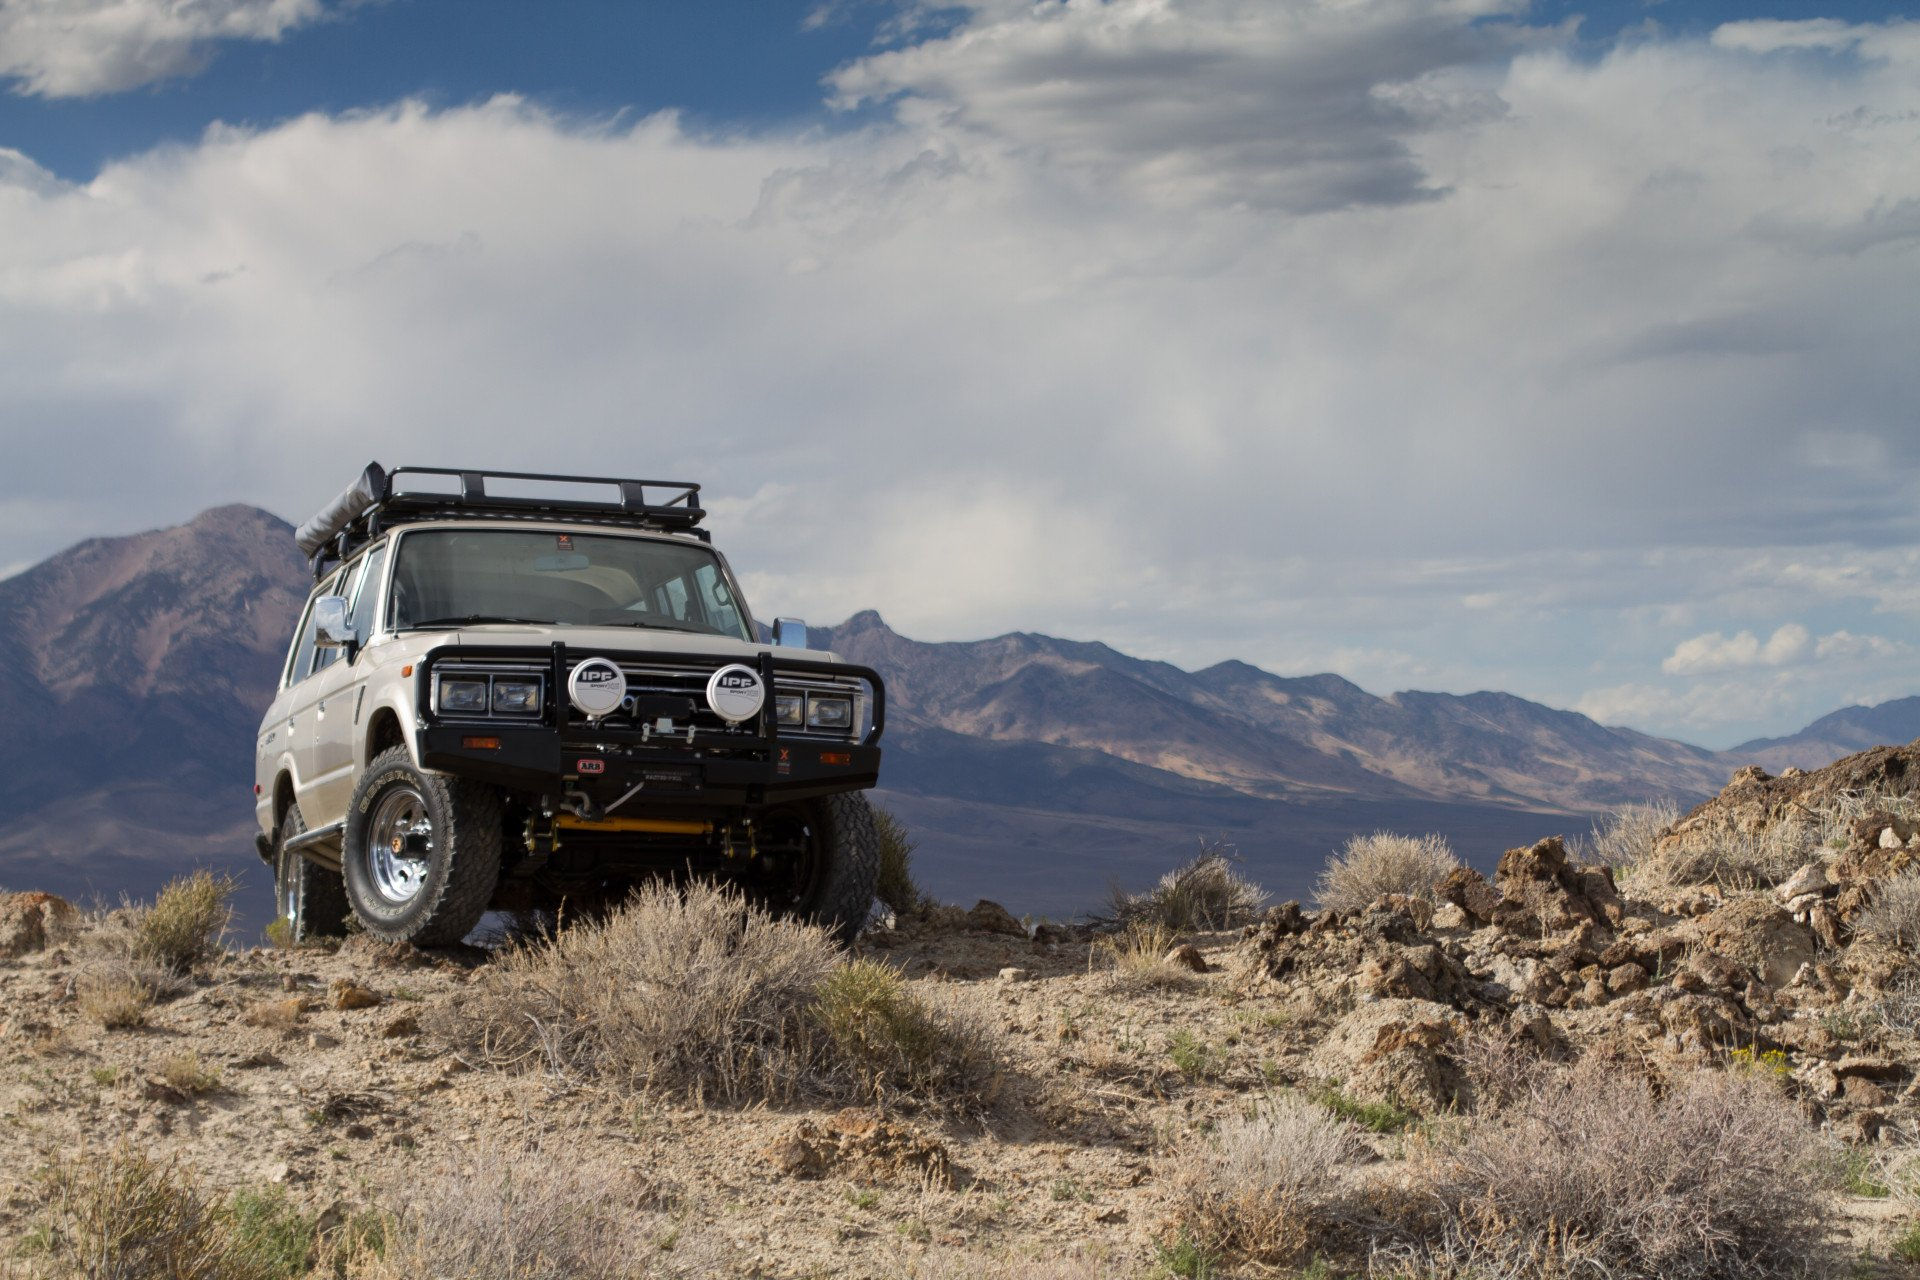 1989 Toyota Land Cruiser 62 Series Build 187 Expedition Overland